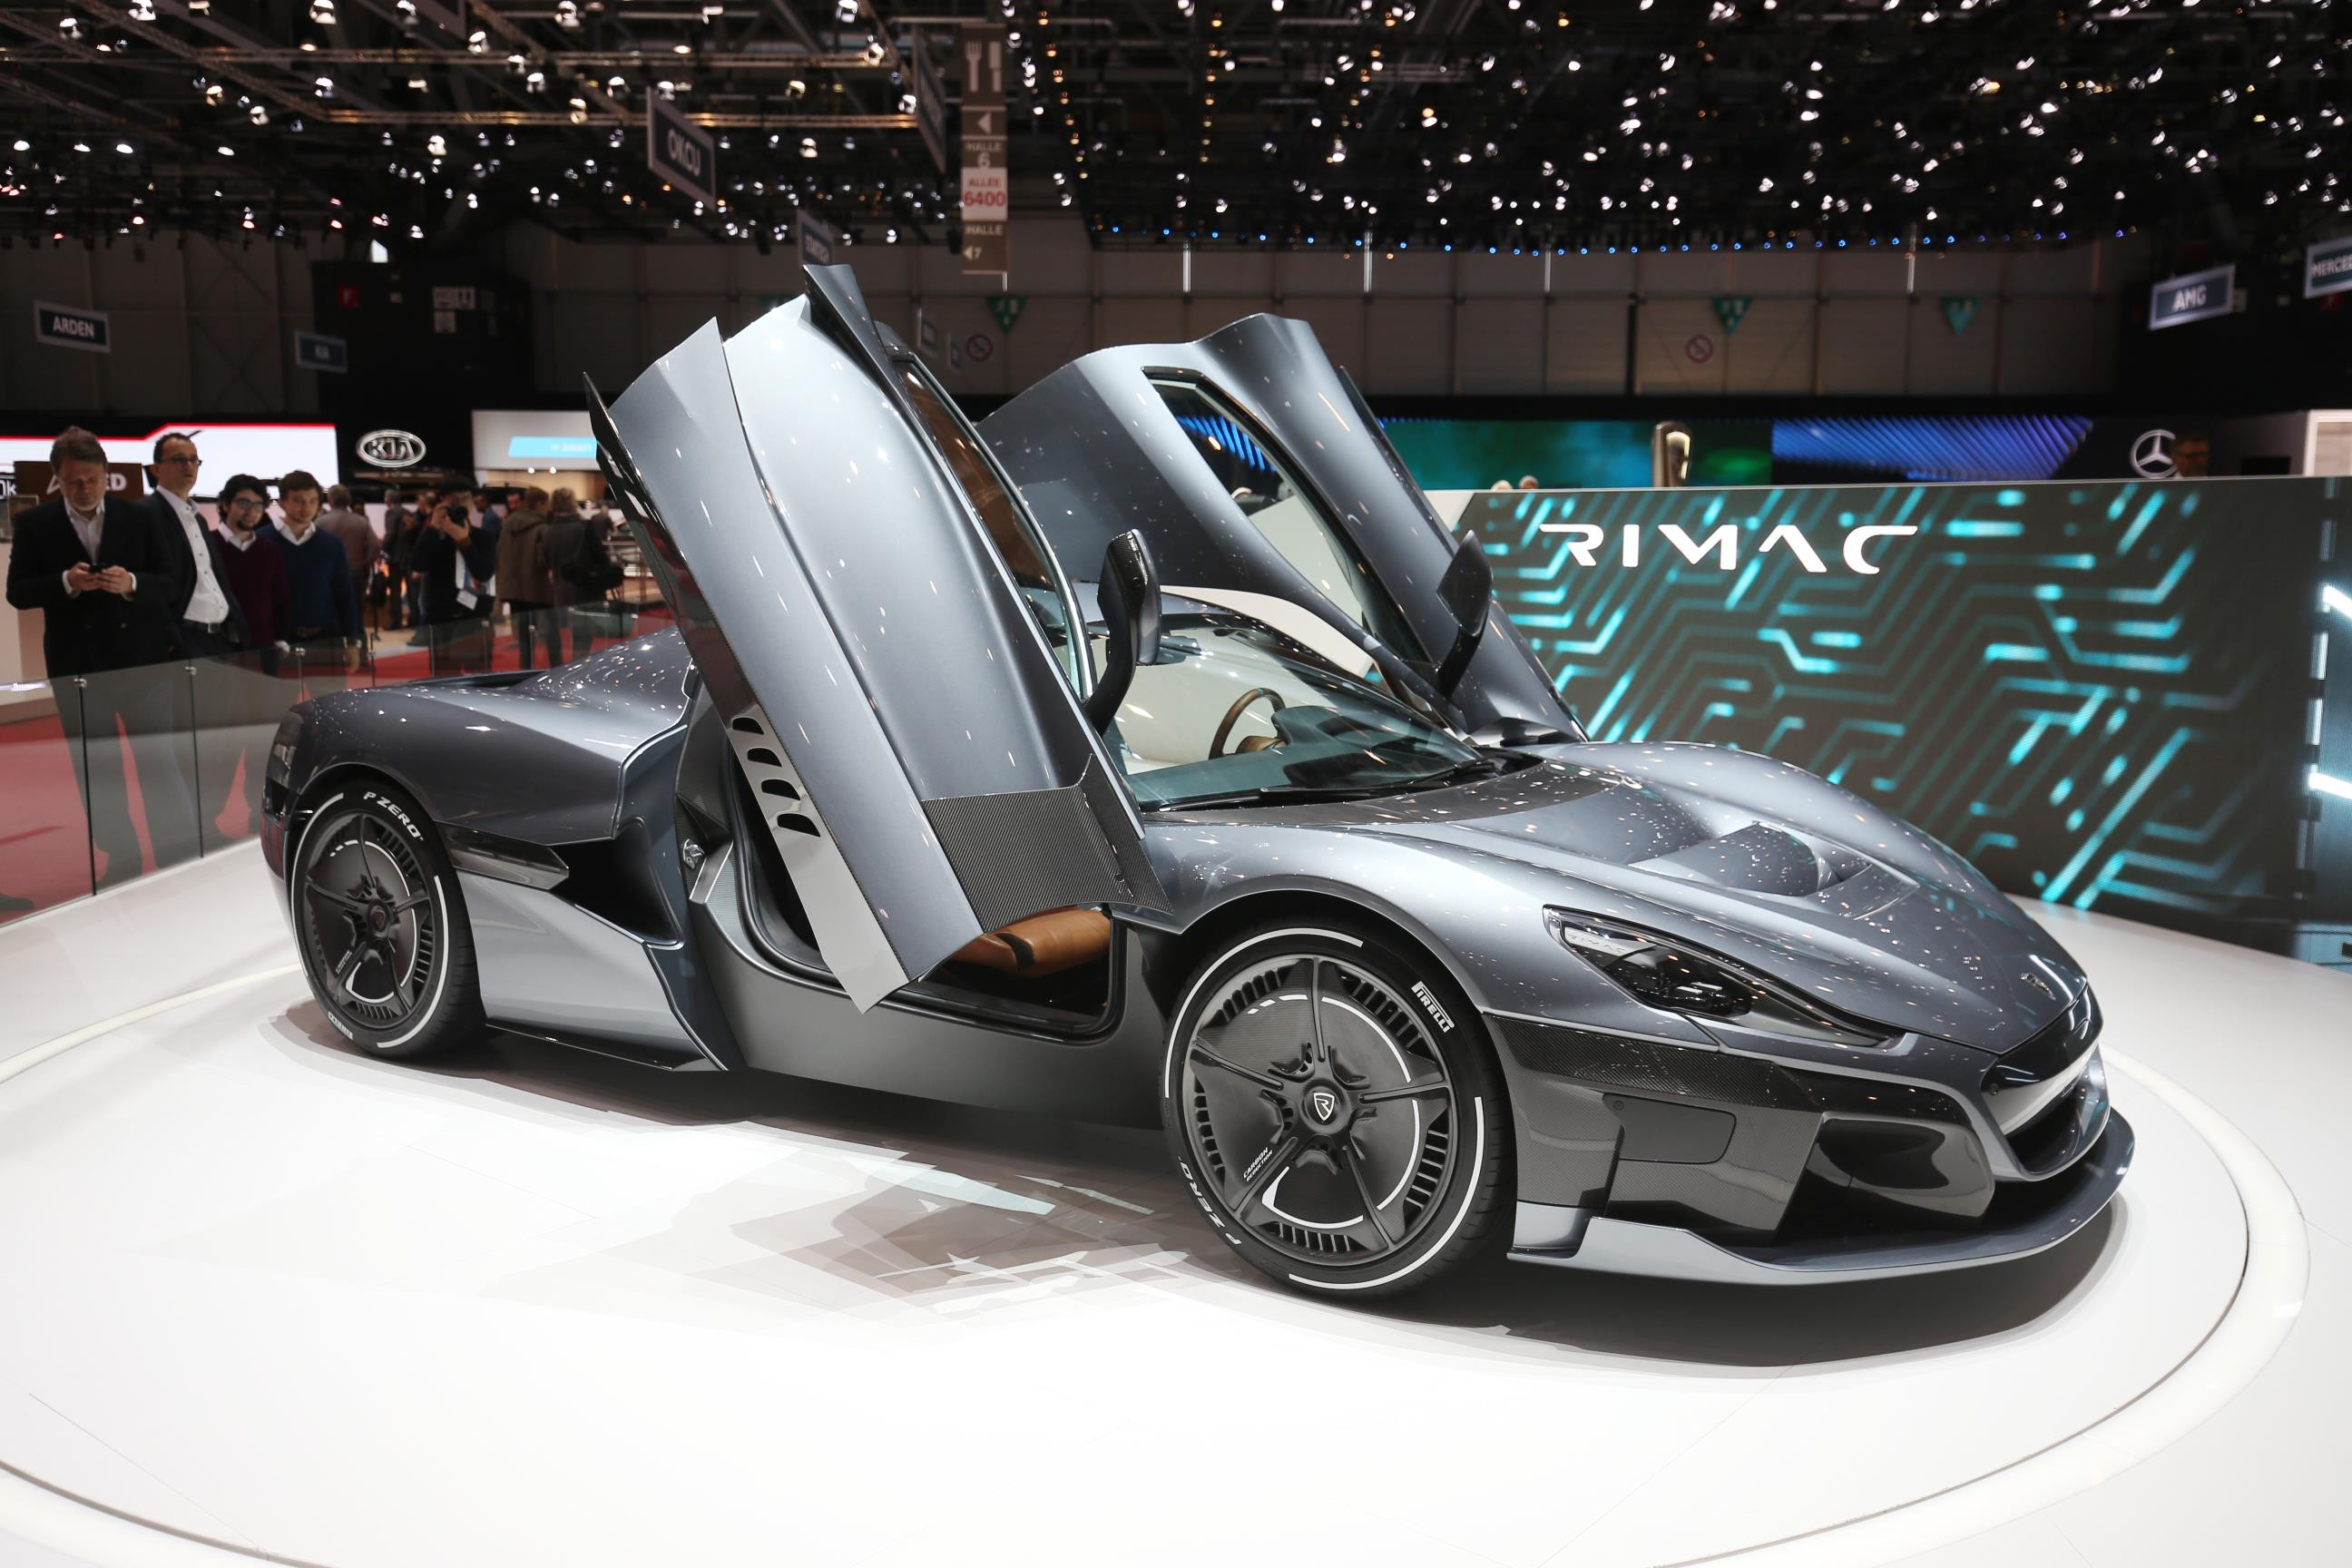 Charcoal grey metallic Rimac Concept Two electric supercar